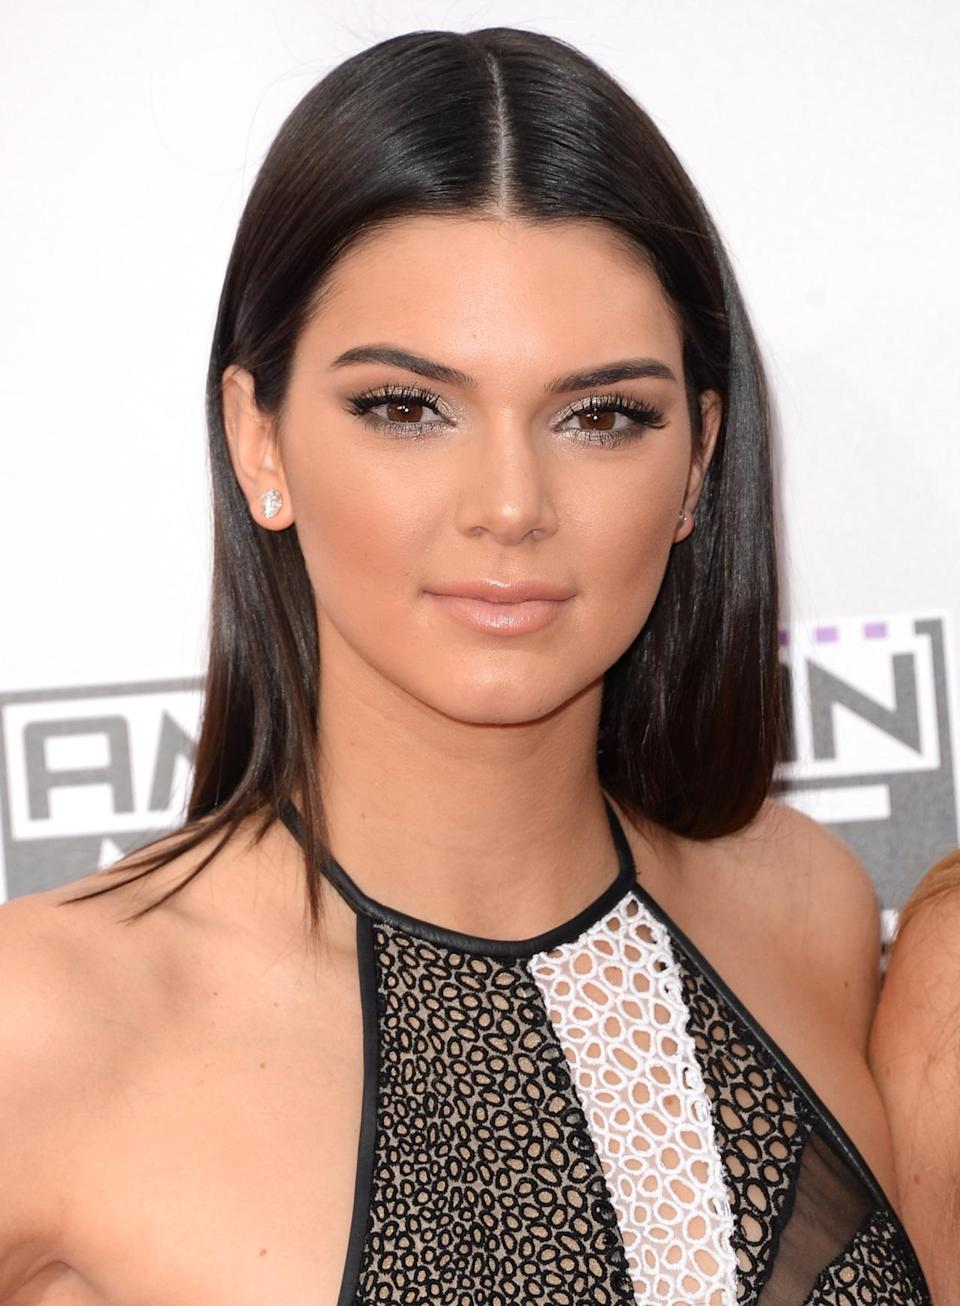 <p>At the Nokia Theatre in Los Angeles, Jenner's slick straight brunette hair was a mod frame for her silver eyeliner and pale pink lipstick. <i>(Photo: Getty Images)</i></p>